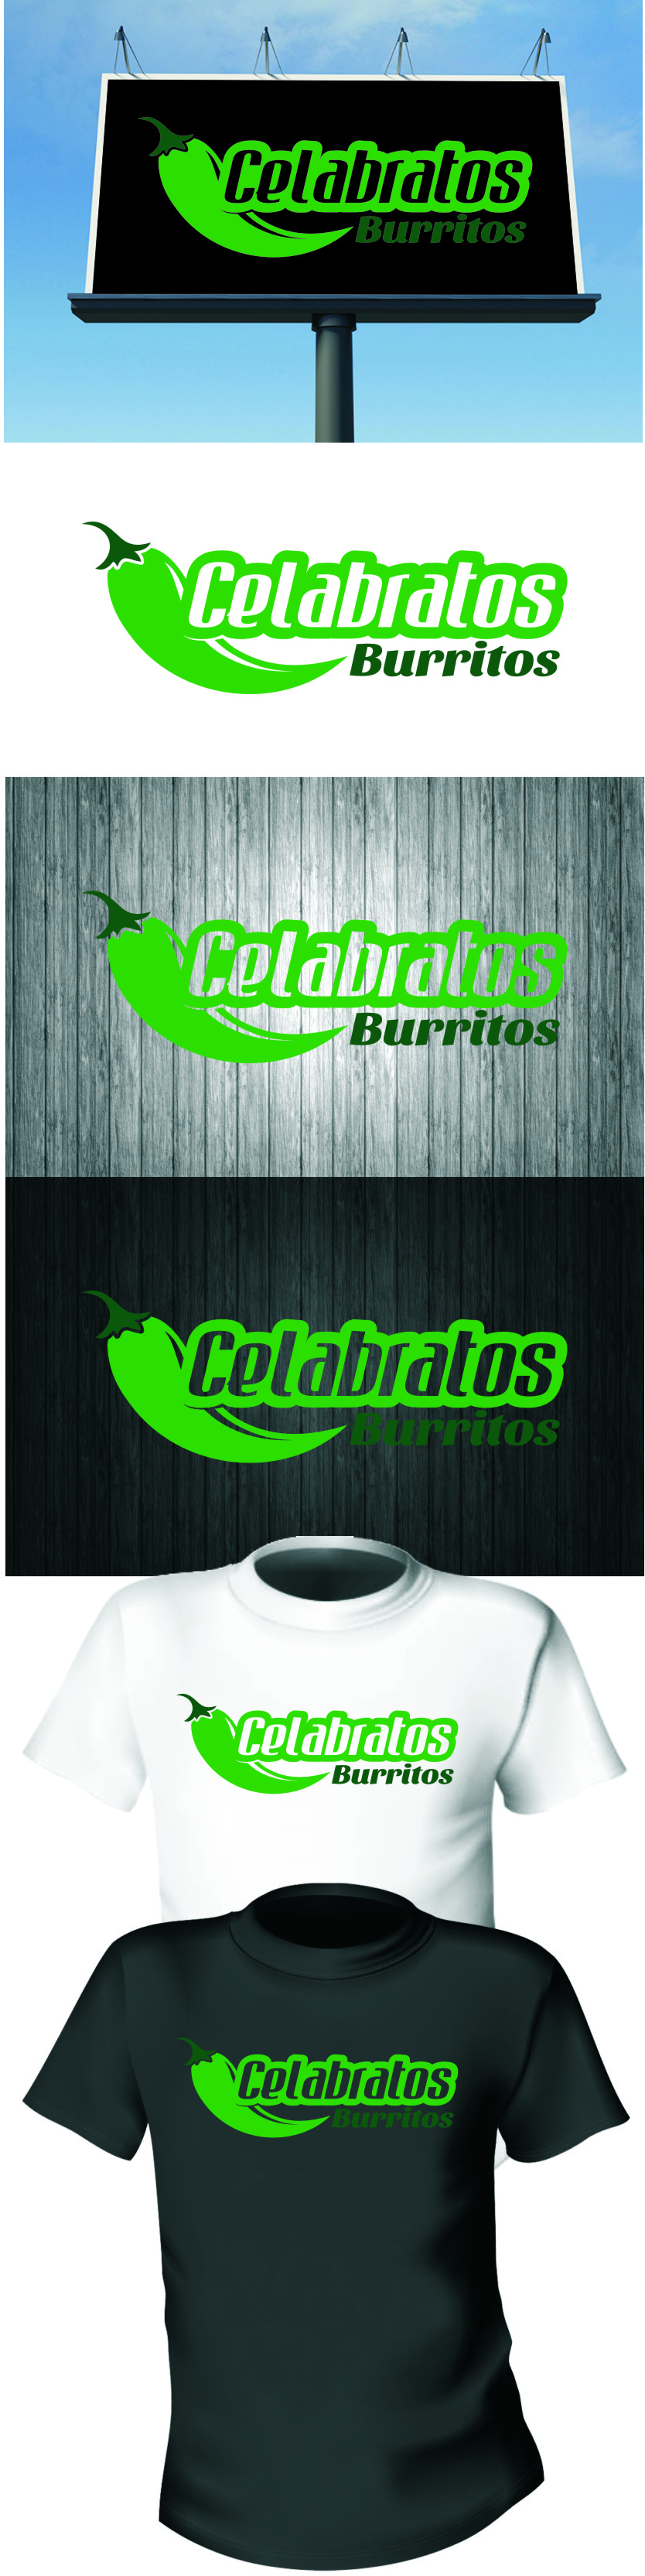 Logo Design by Ngepet_art - Entry No. 98 in the Logo Design Contest Imaginative Logo Design for Celabratos.